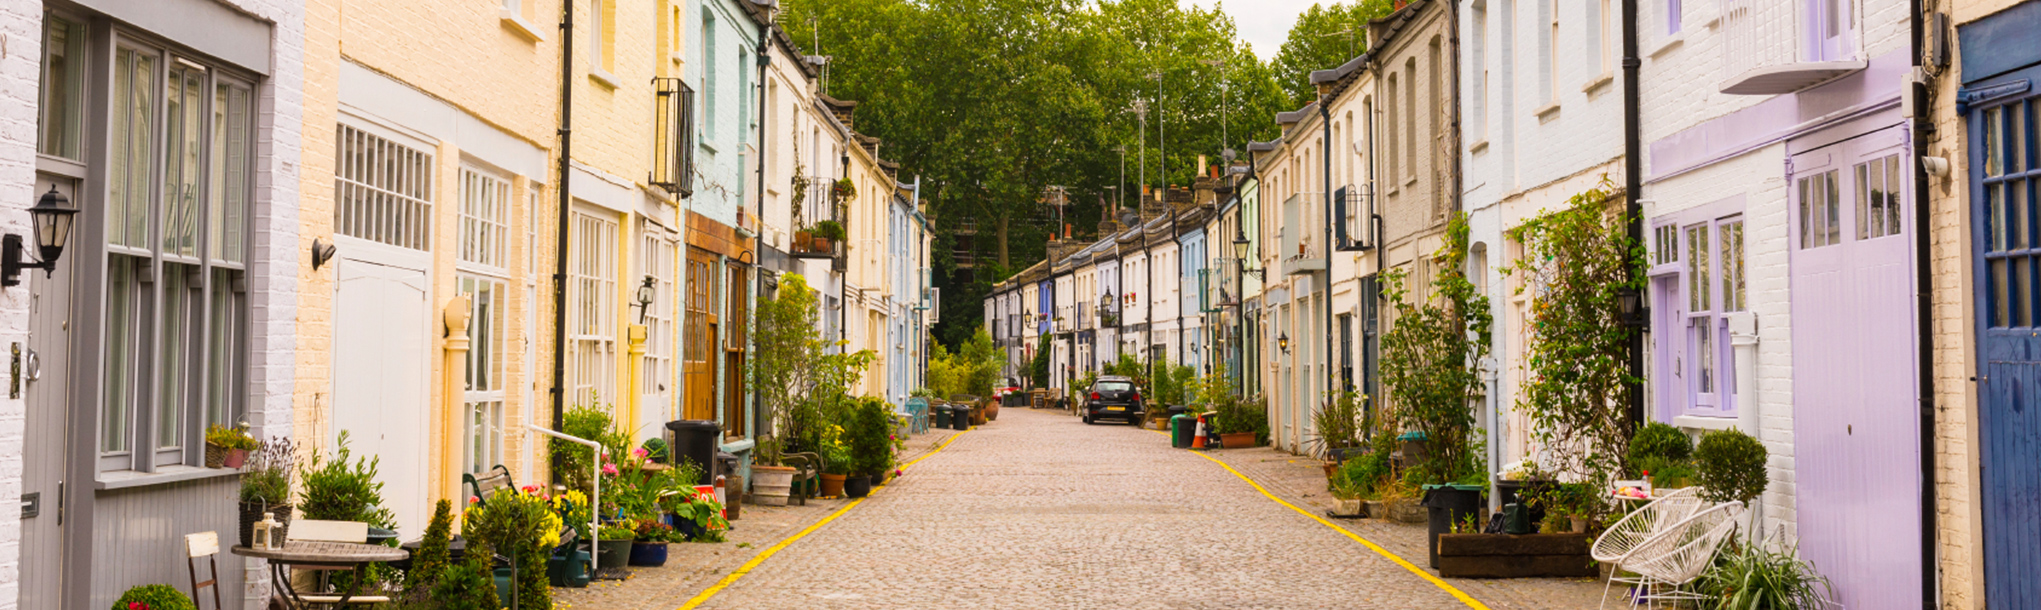 Photo of mews row of houses